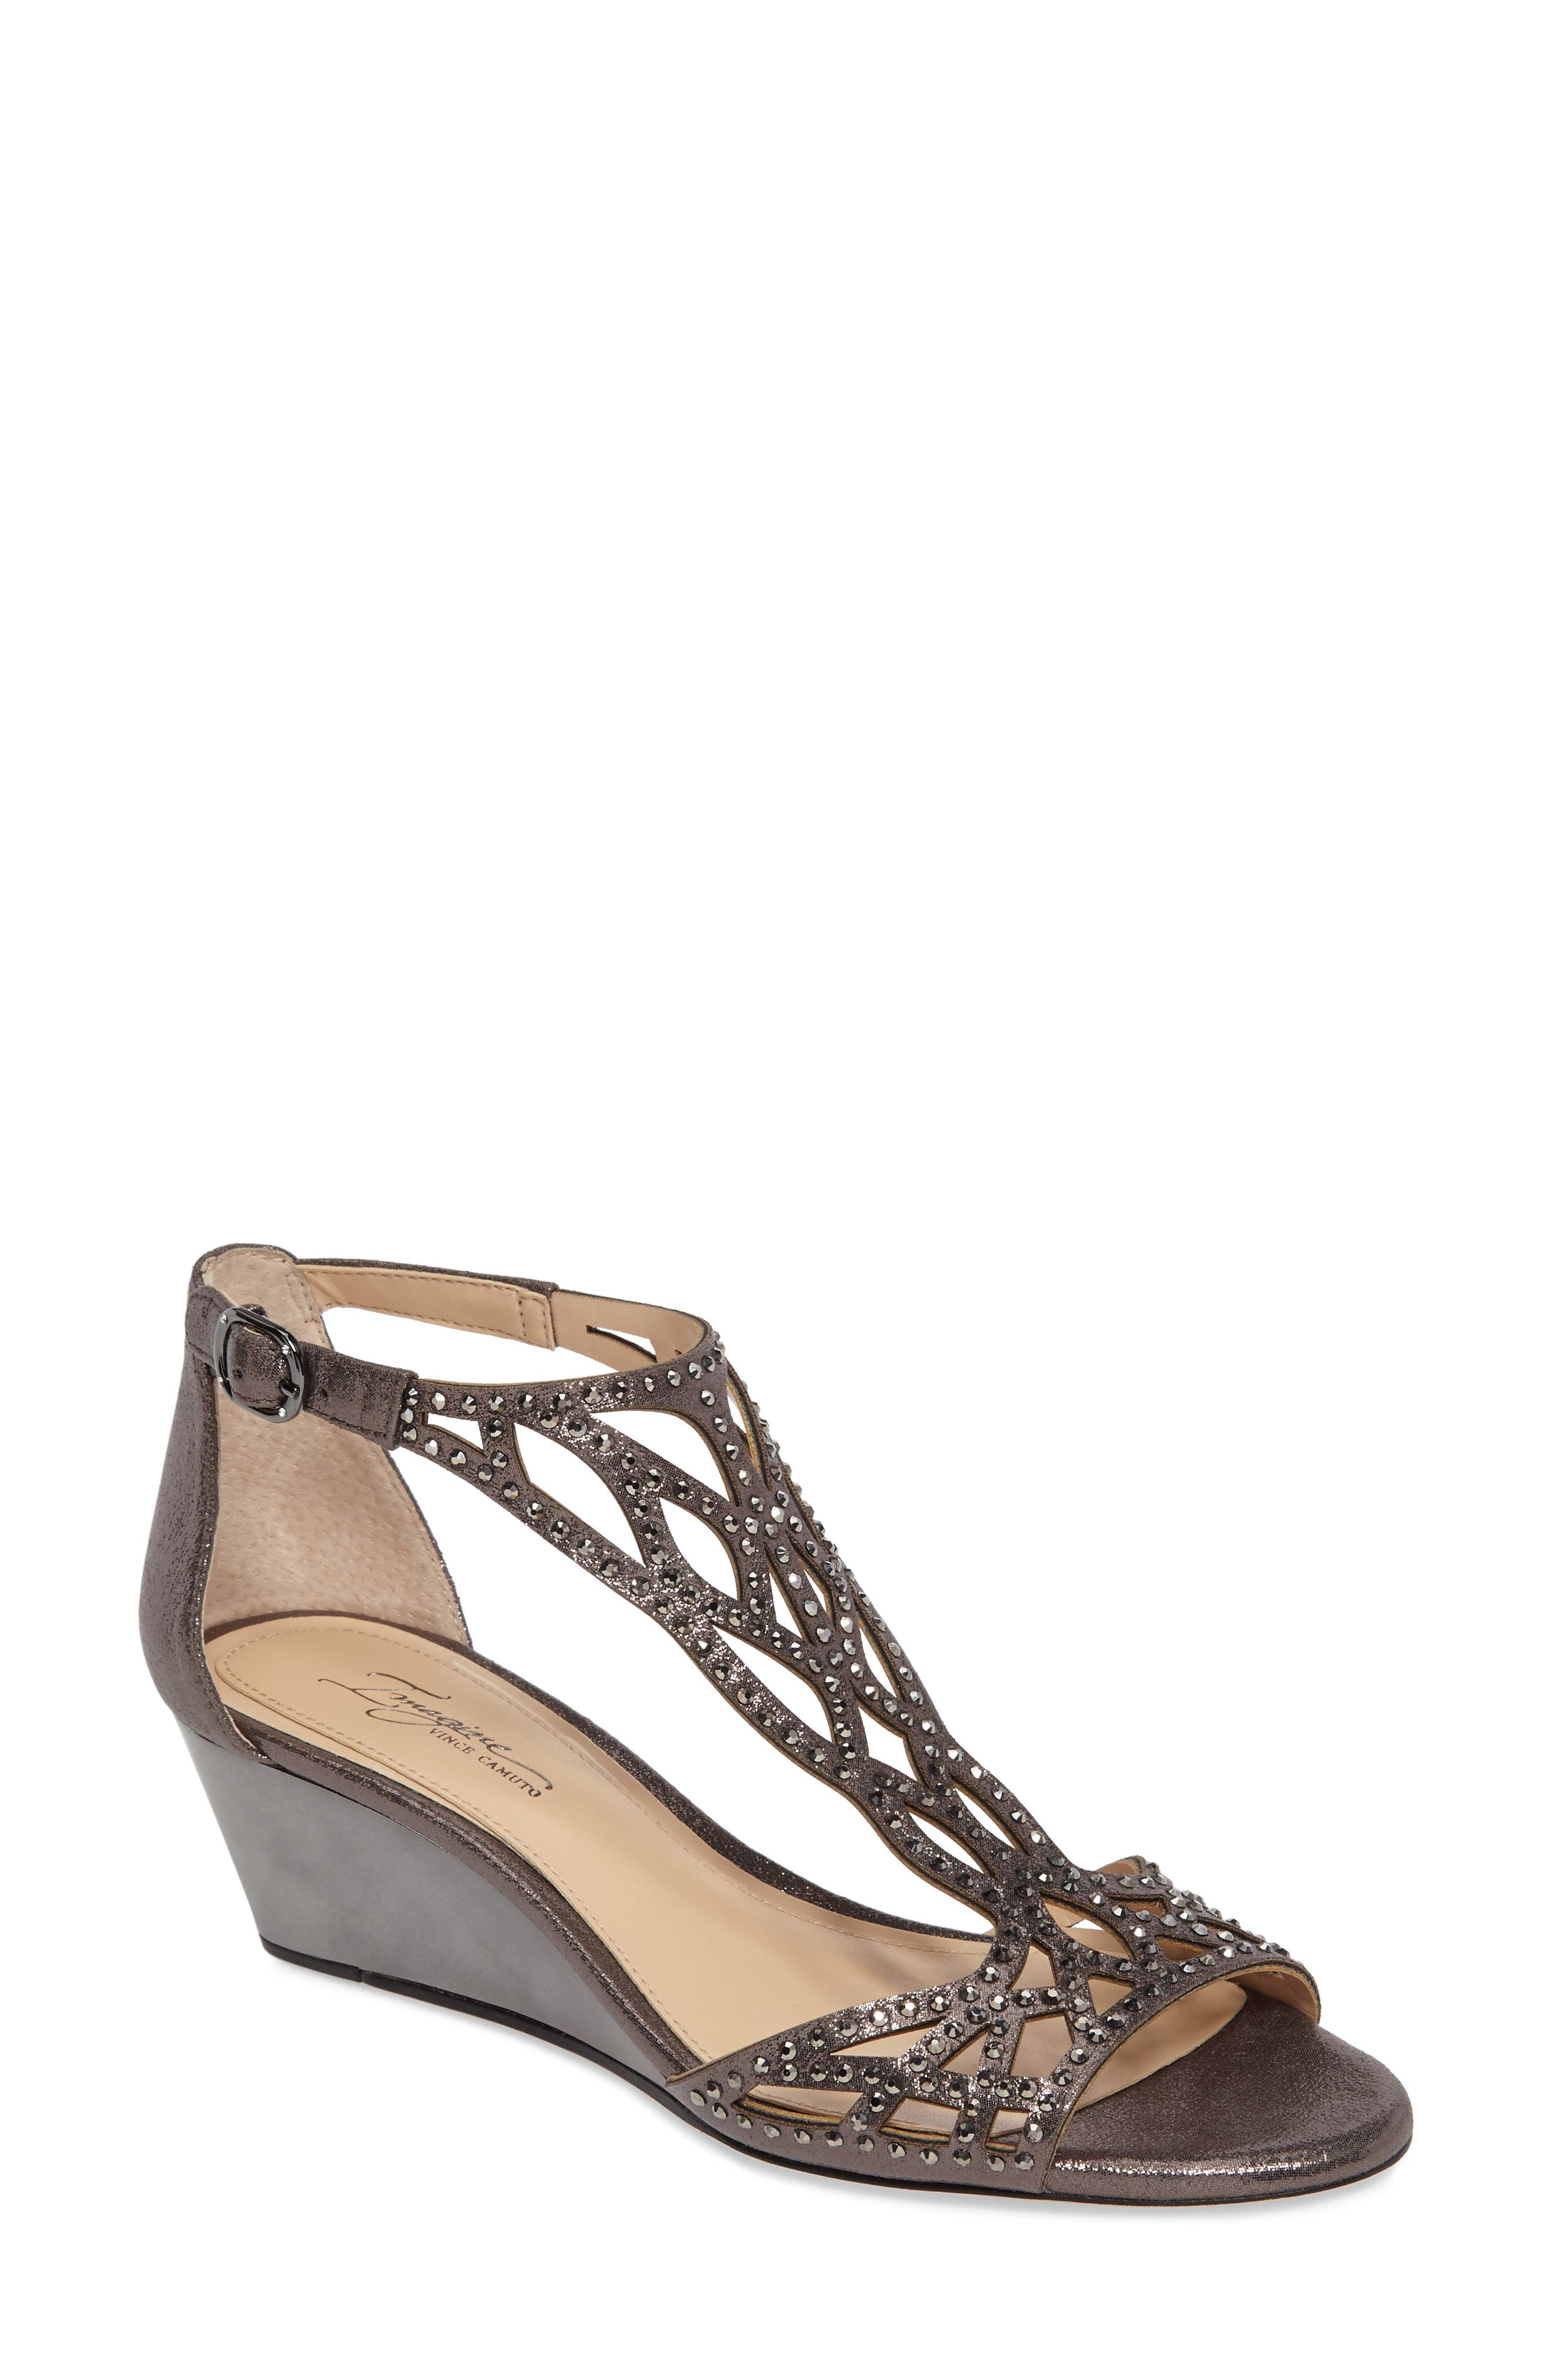 Alternate Image 1 Selected - Imagine by Vince Camuto 'Jalen' Wedge Sandal (Women)